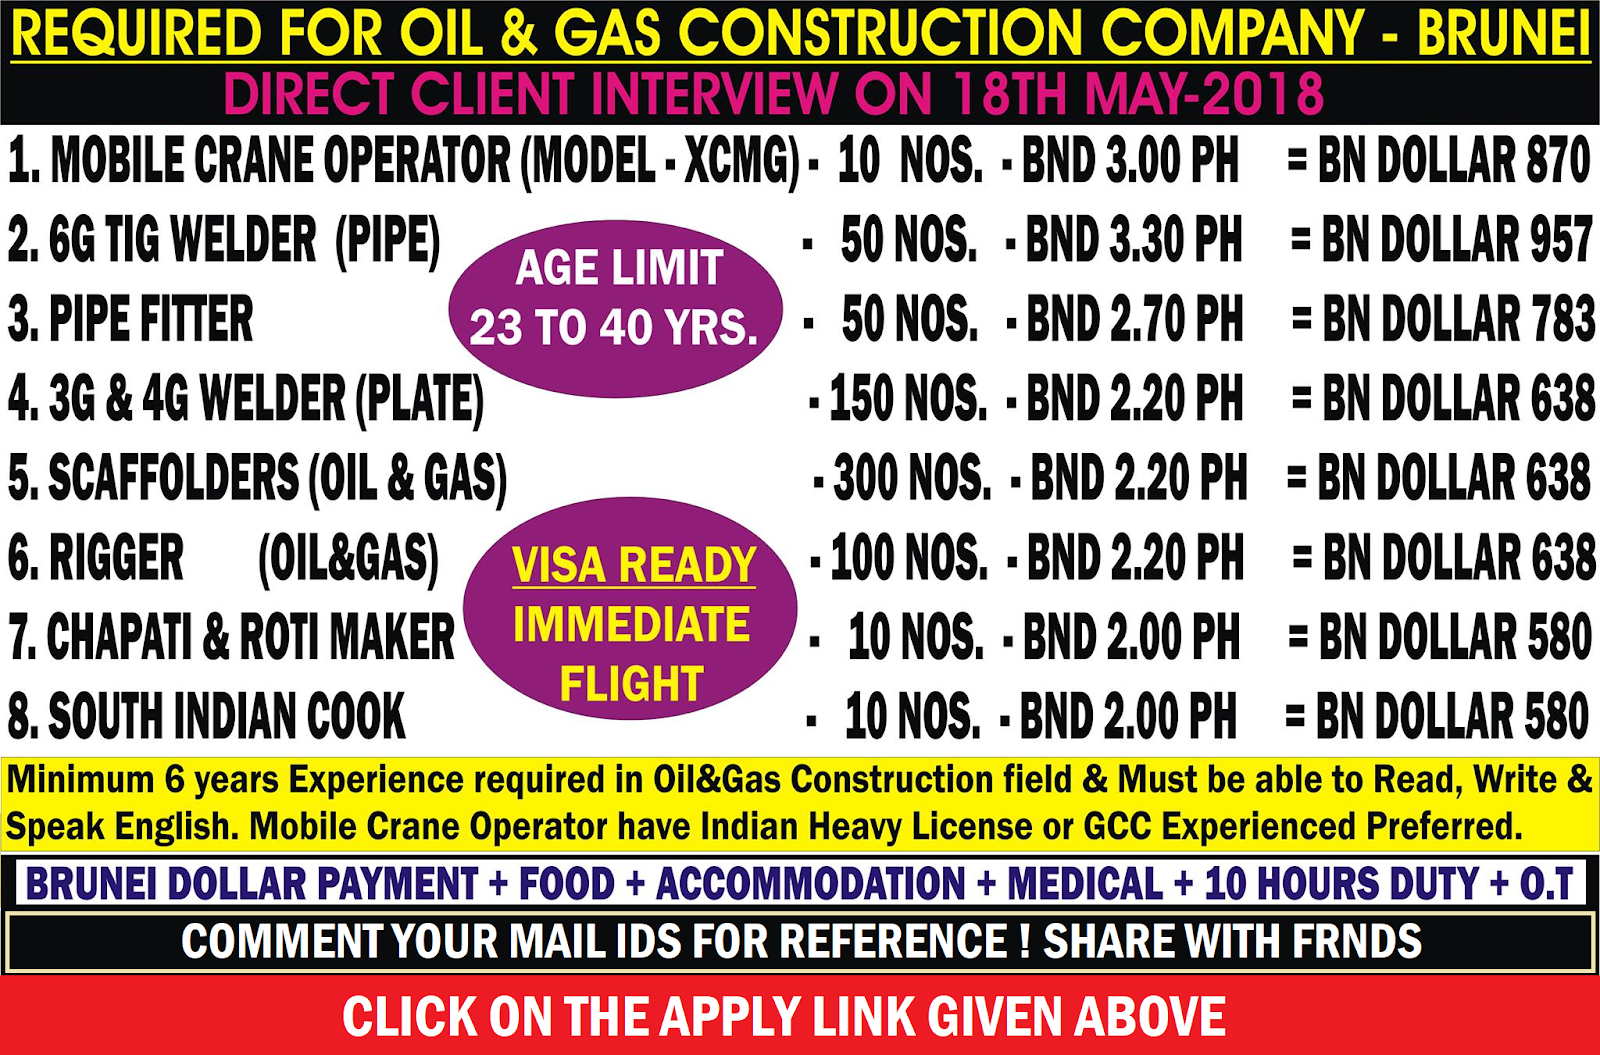 REQUIRED FOR OIL & GAS CONSTRUCTION COMPANY | BRUNEI | APPLY